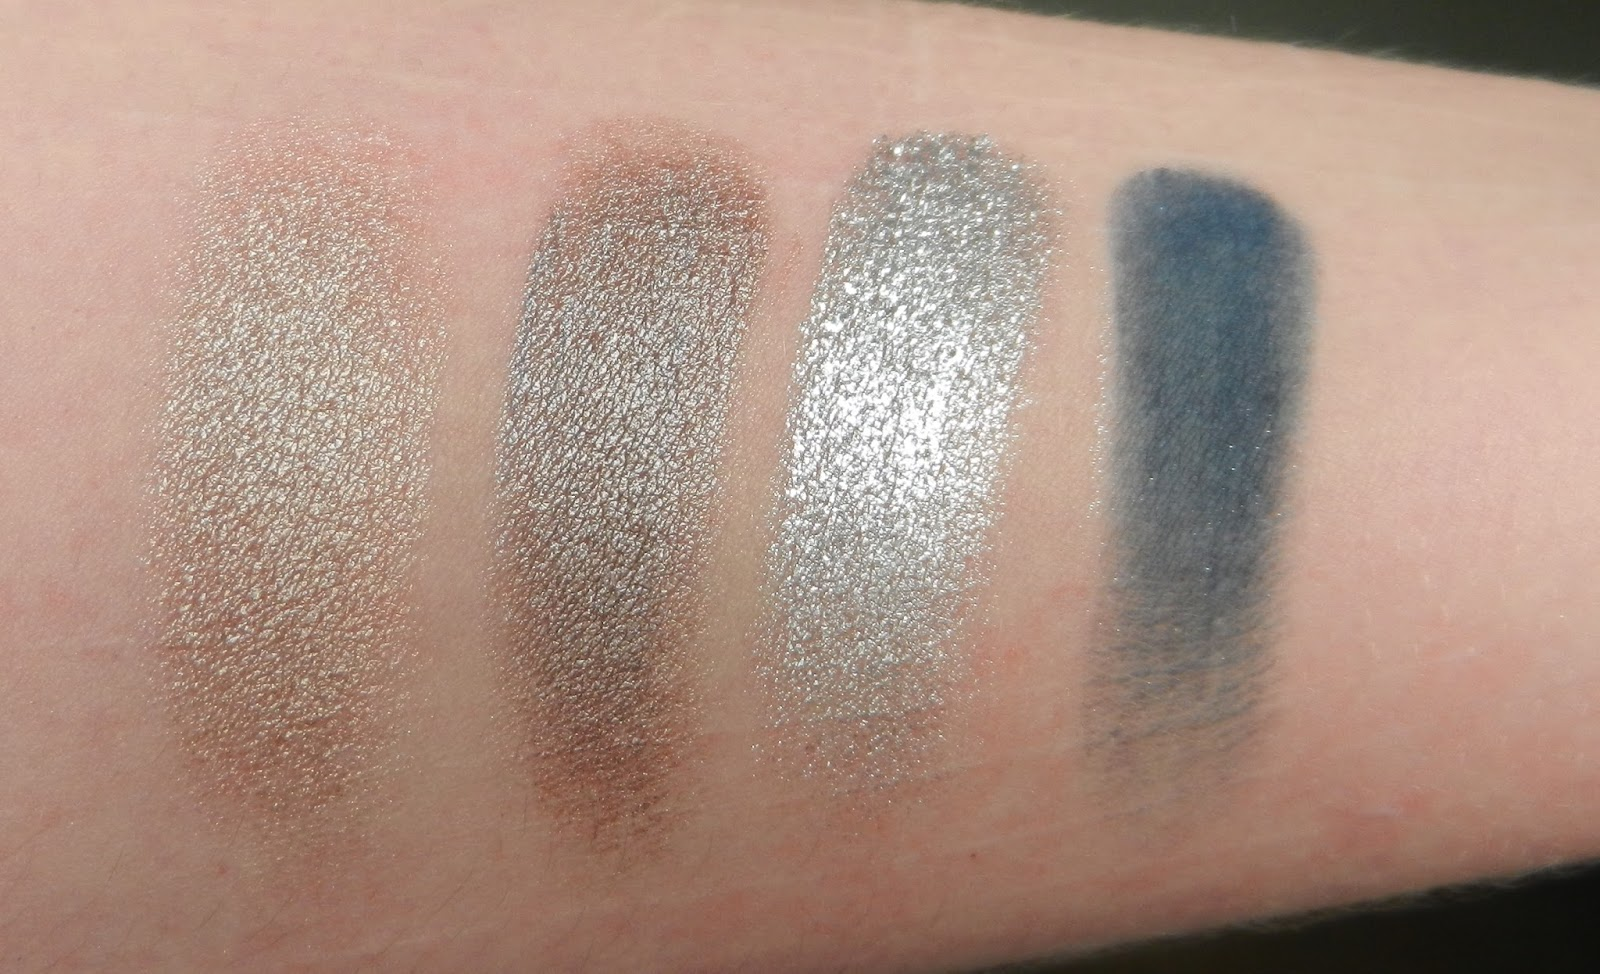 Natasha Denona Blue 28 Swatches 12M Glaze, 38M Gray-Brown, 04M Chromatic, 01V Navy